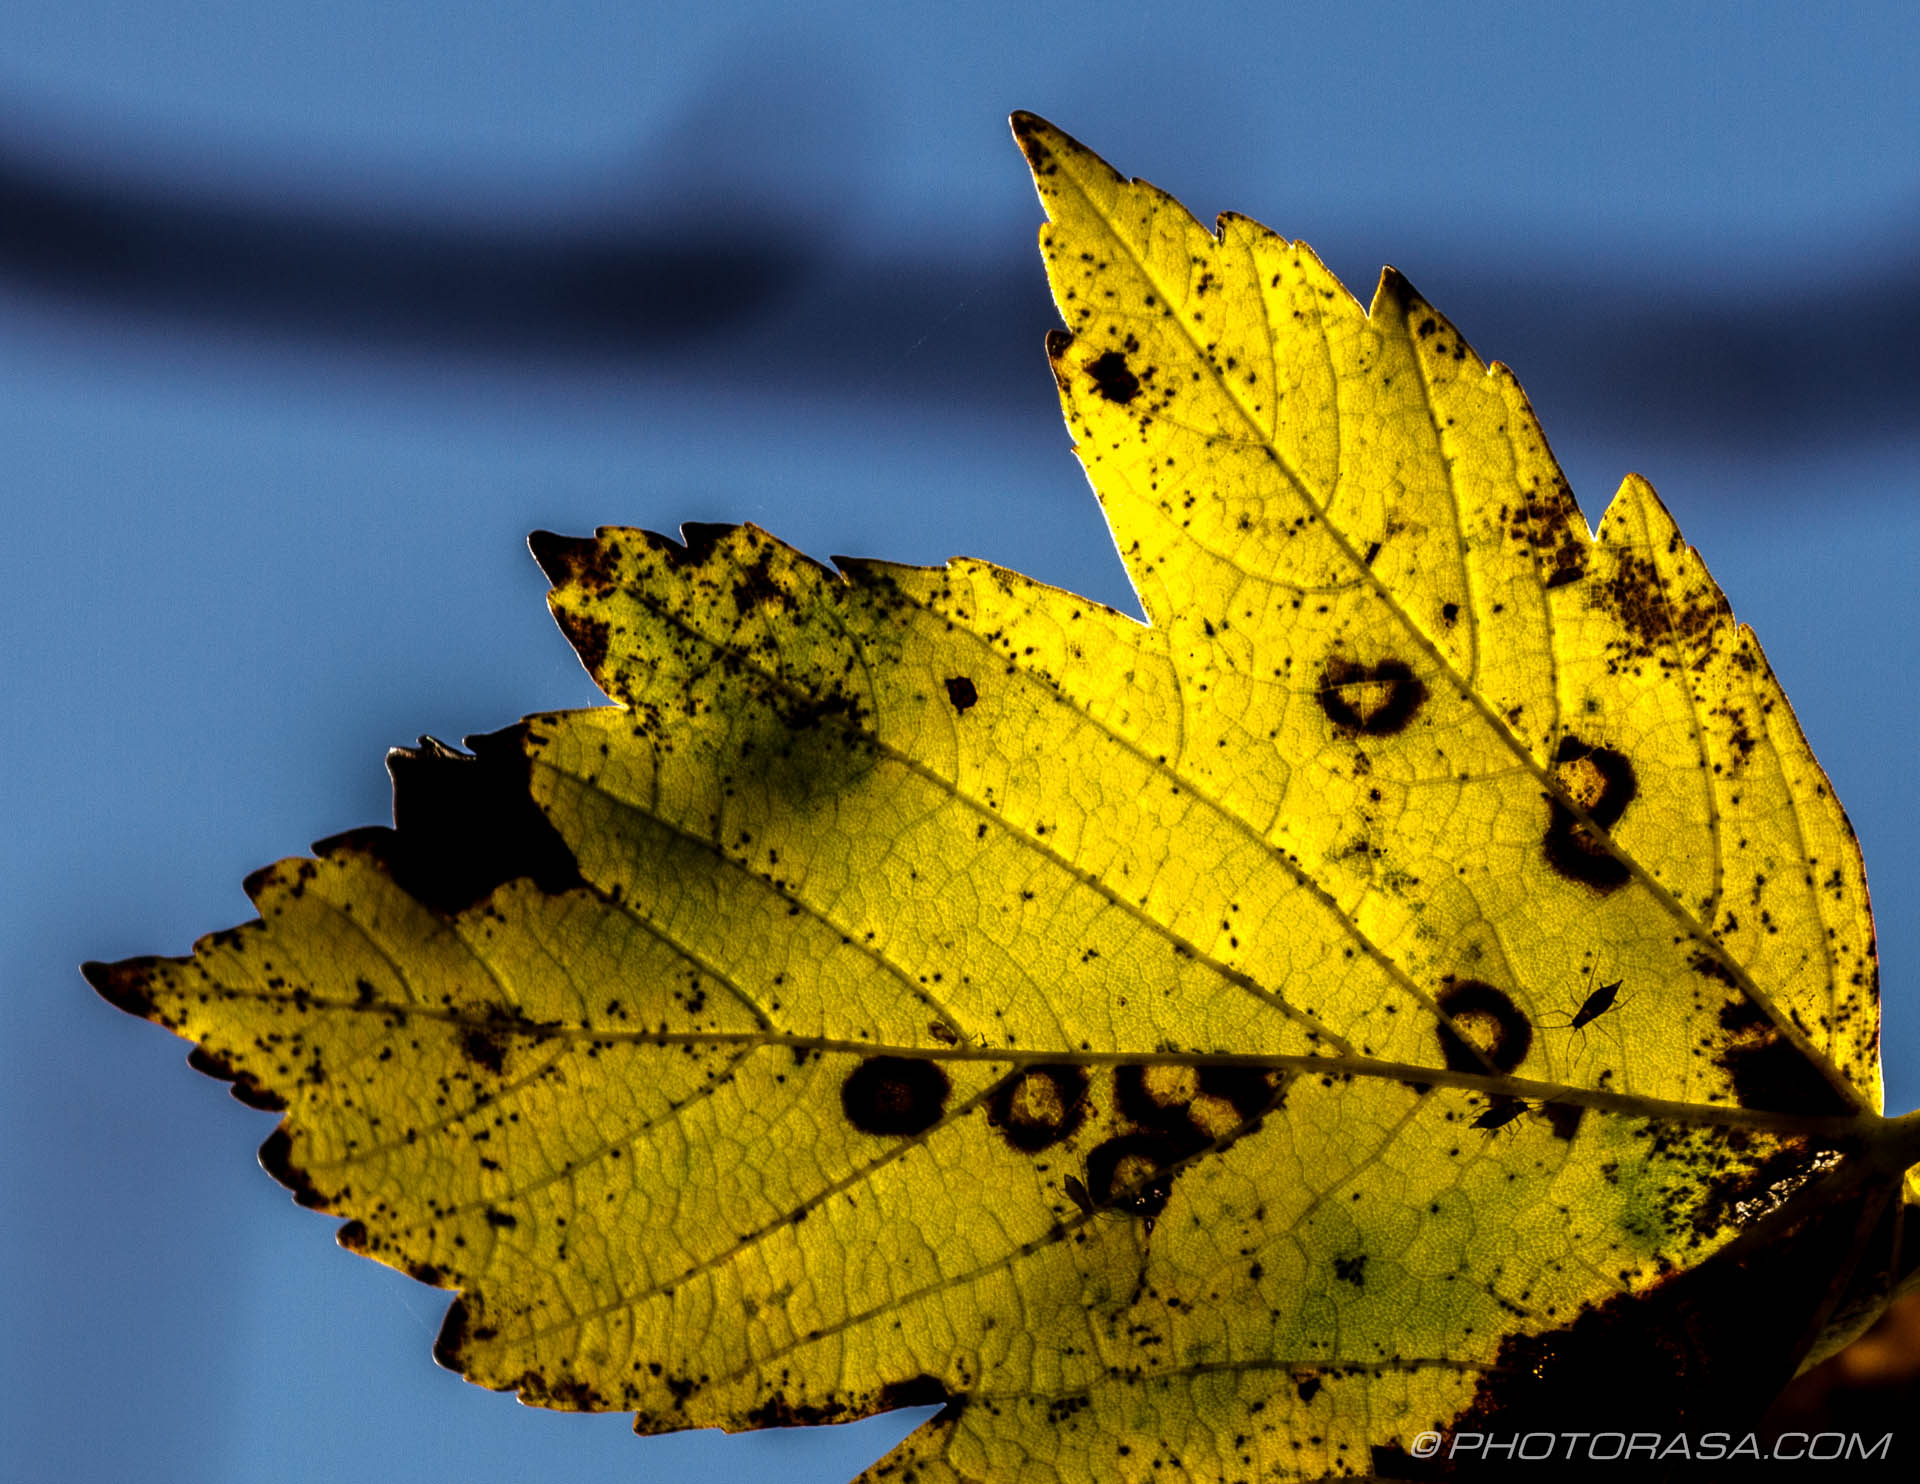 http://photorasa.com/leaves/yellow-autumn-maple/